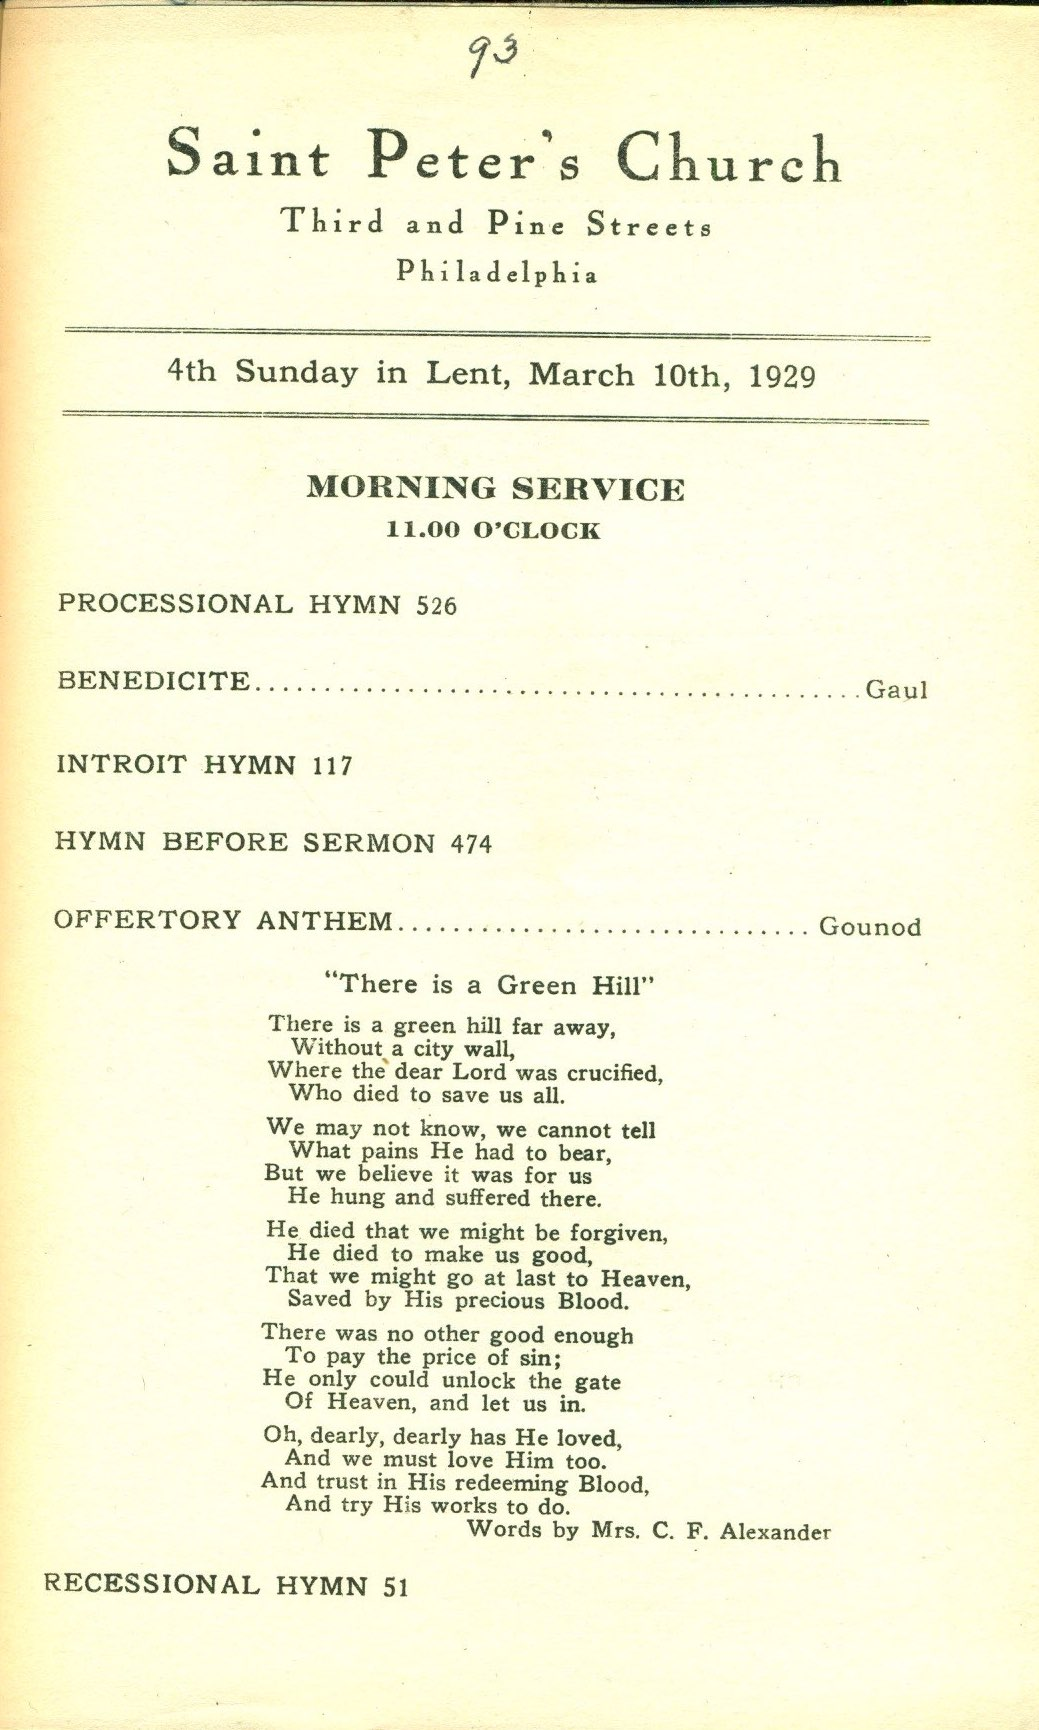 Service Leaflet for the Fourth Sunday in Lent at St  Peter's